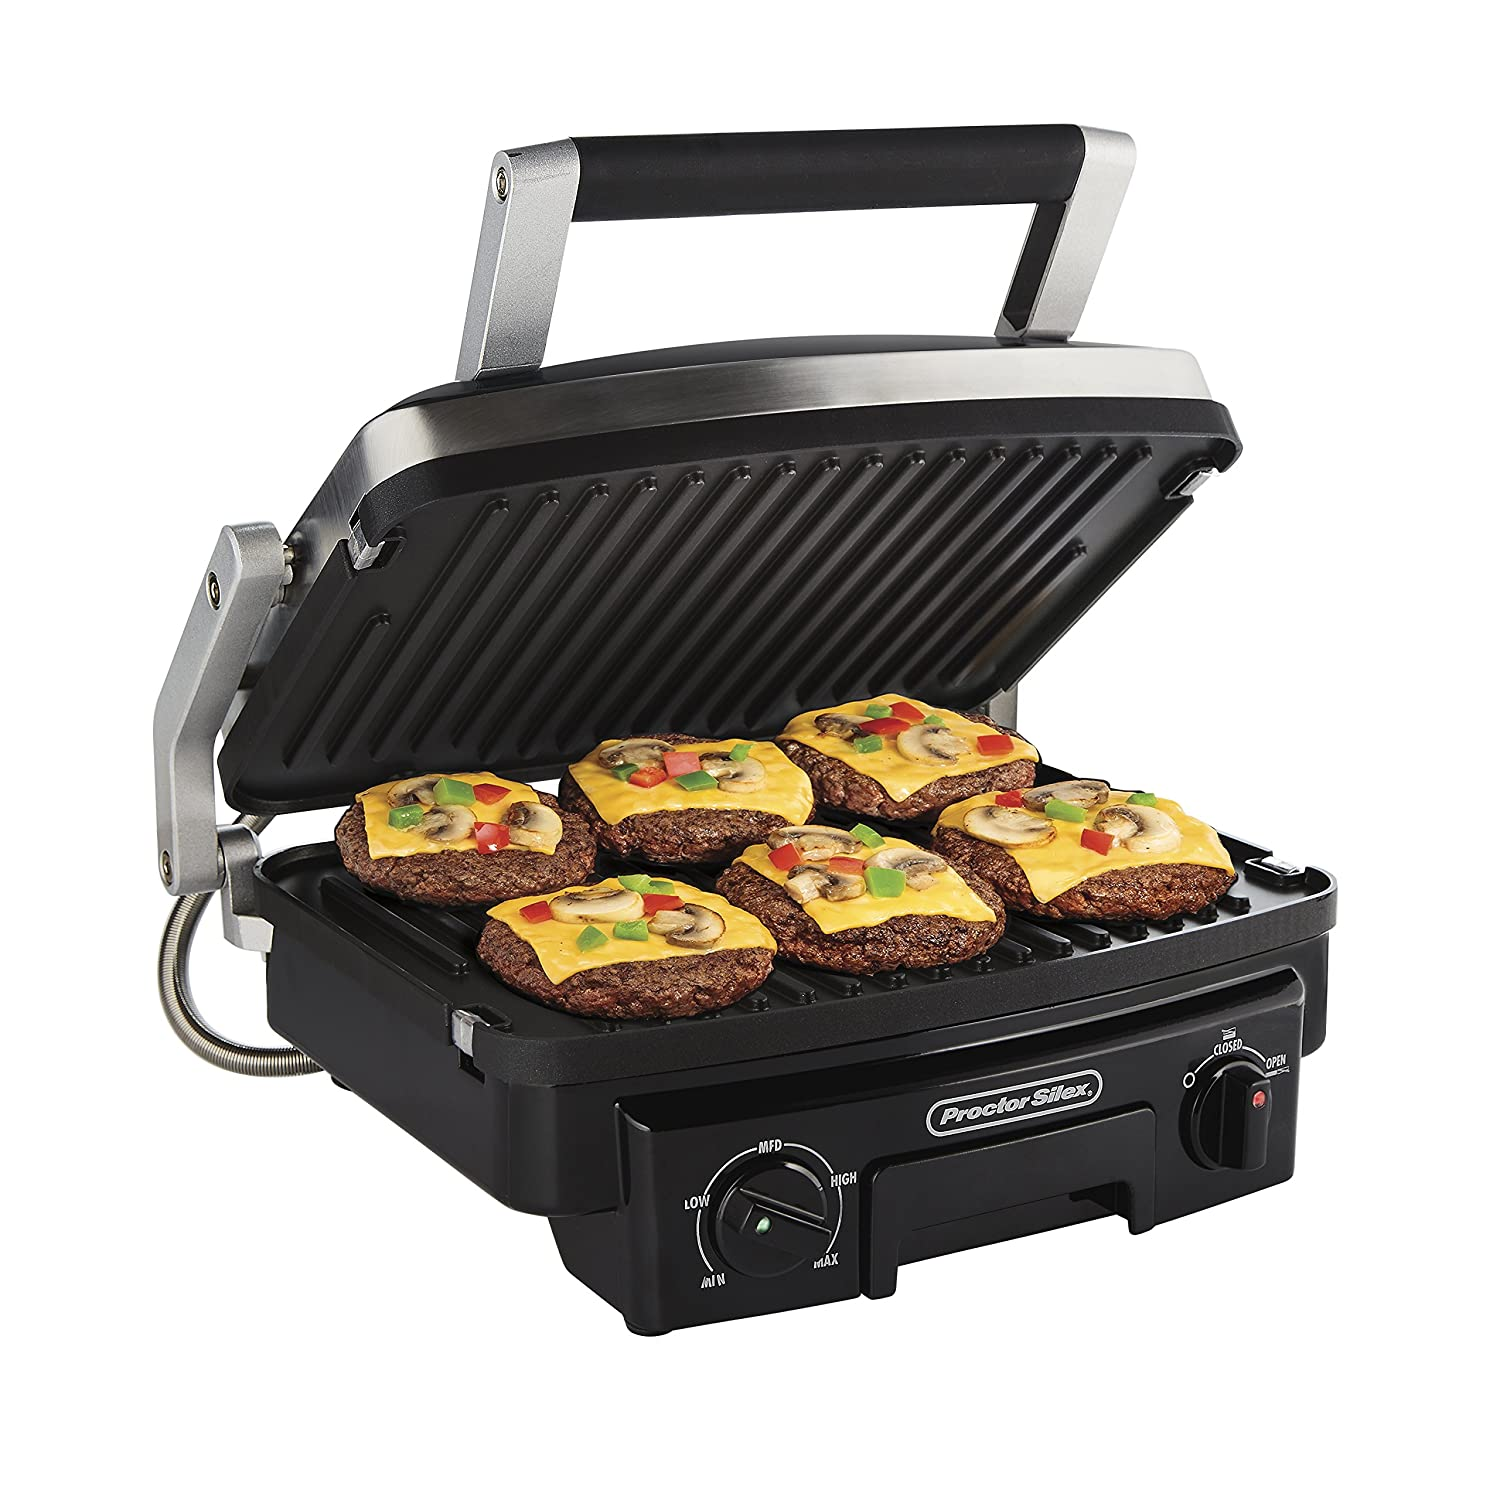 Proctor Silex 5-in-1 Electric Indoor Grill, Griddle Panini Press, Opens Flat to Double Cooking Space, Reversible Nonstick Plates, Stainless Steel 25340R